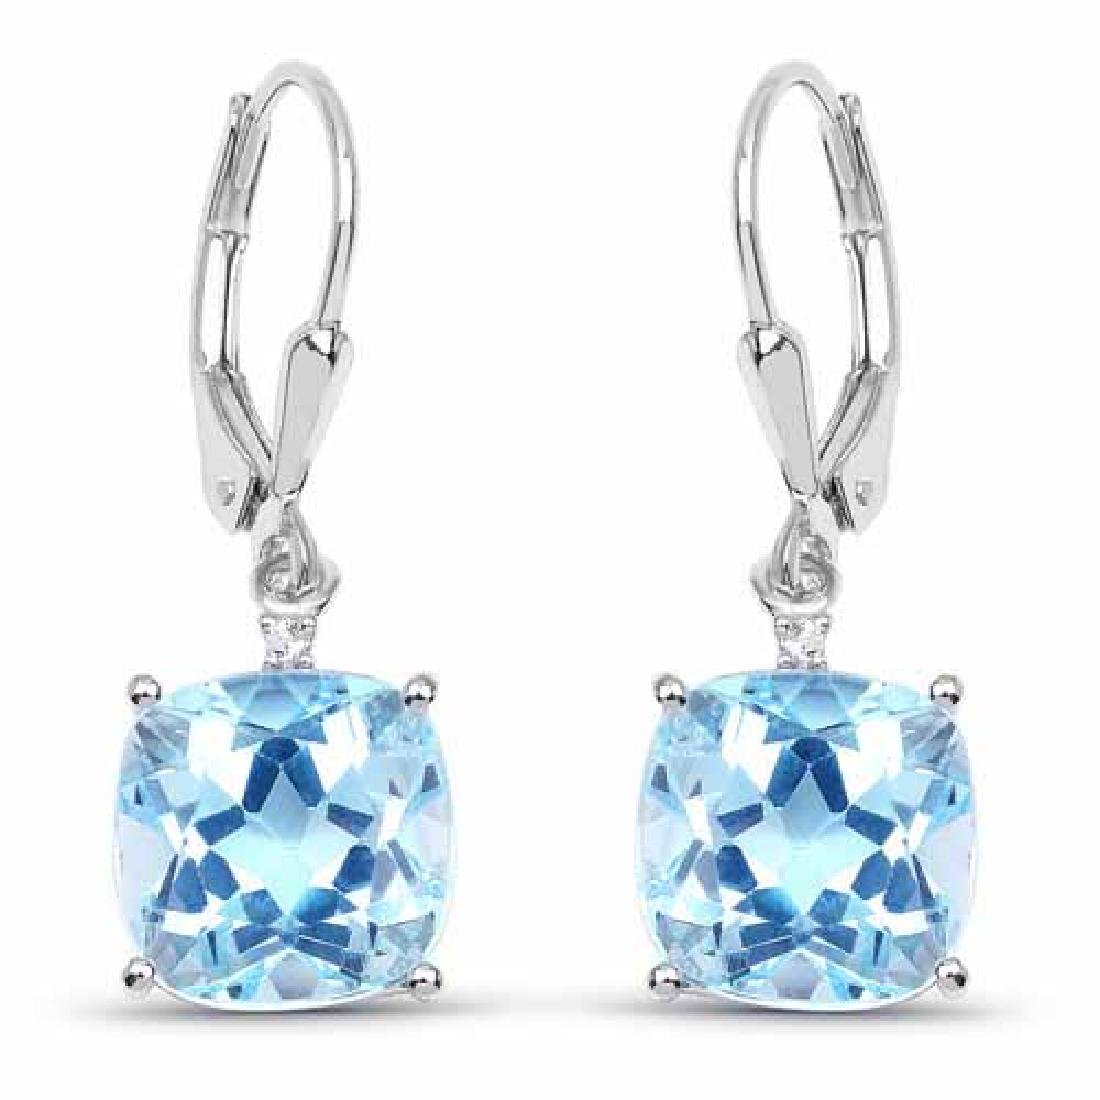 8.83 Carat Genuine Blue Topaz and White Topaz .925 Ster